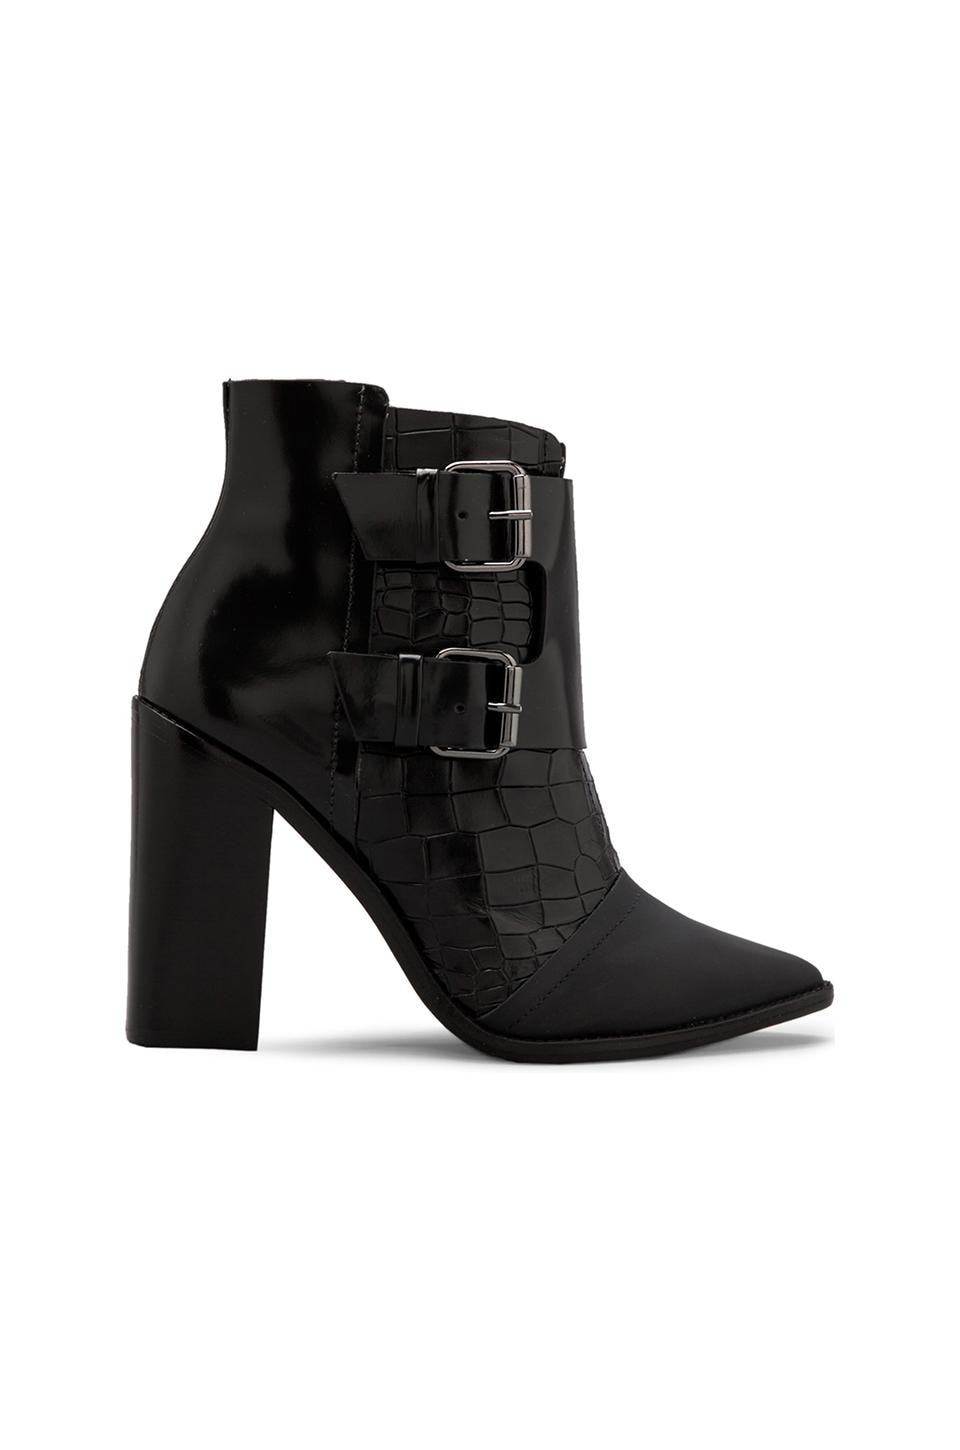 Tibi Piper Bootie in Black